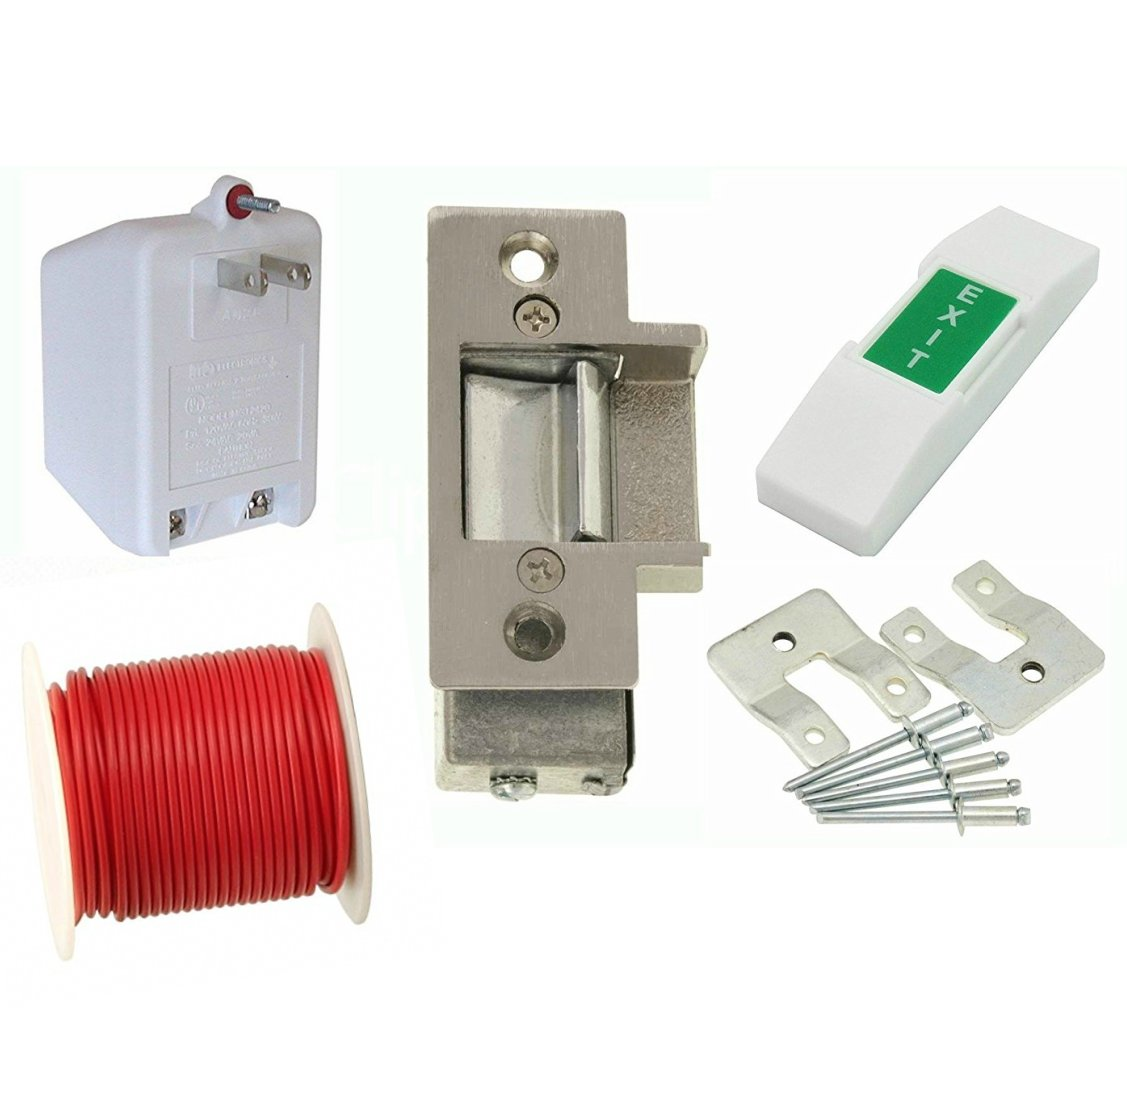 Cheap Electric Strike Lock Wiring Diagram Find Door Get Quotations Lee 14c Commercial Kit For Metal Doors Set Has